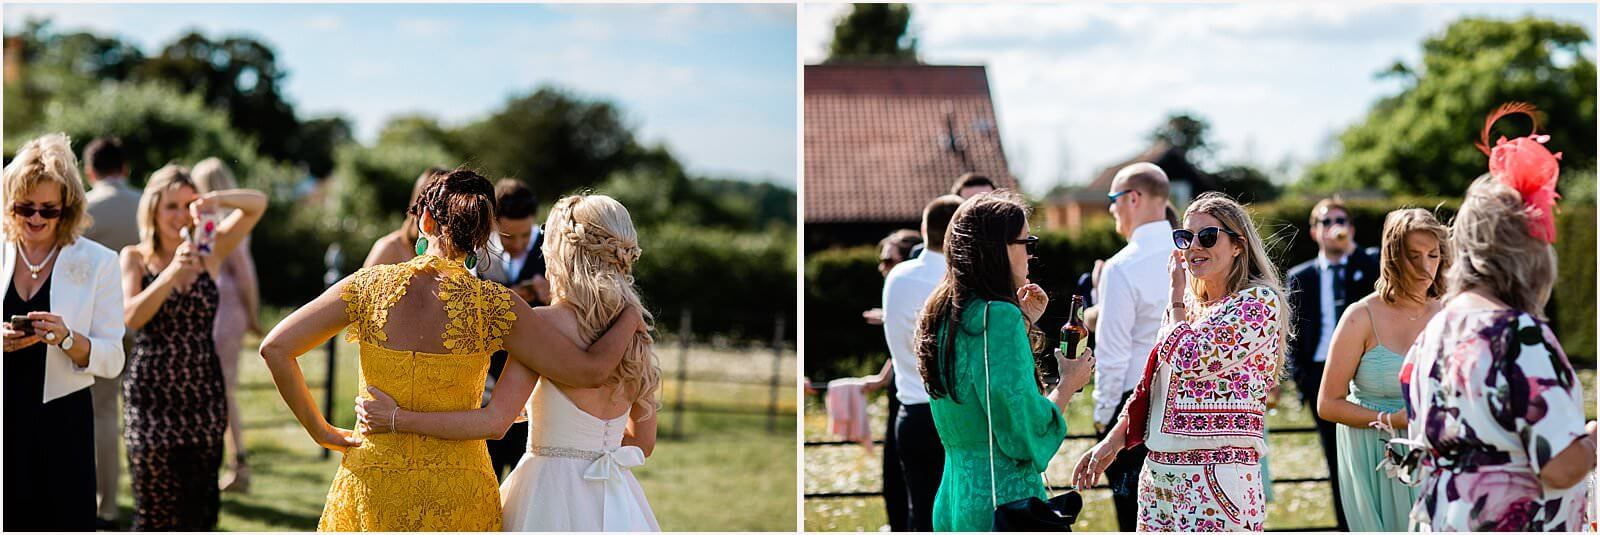 Polstead Church Wedding | Carla & Toby 41